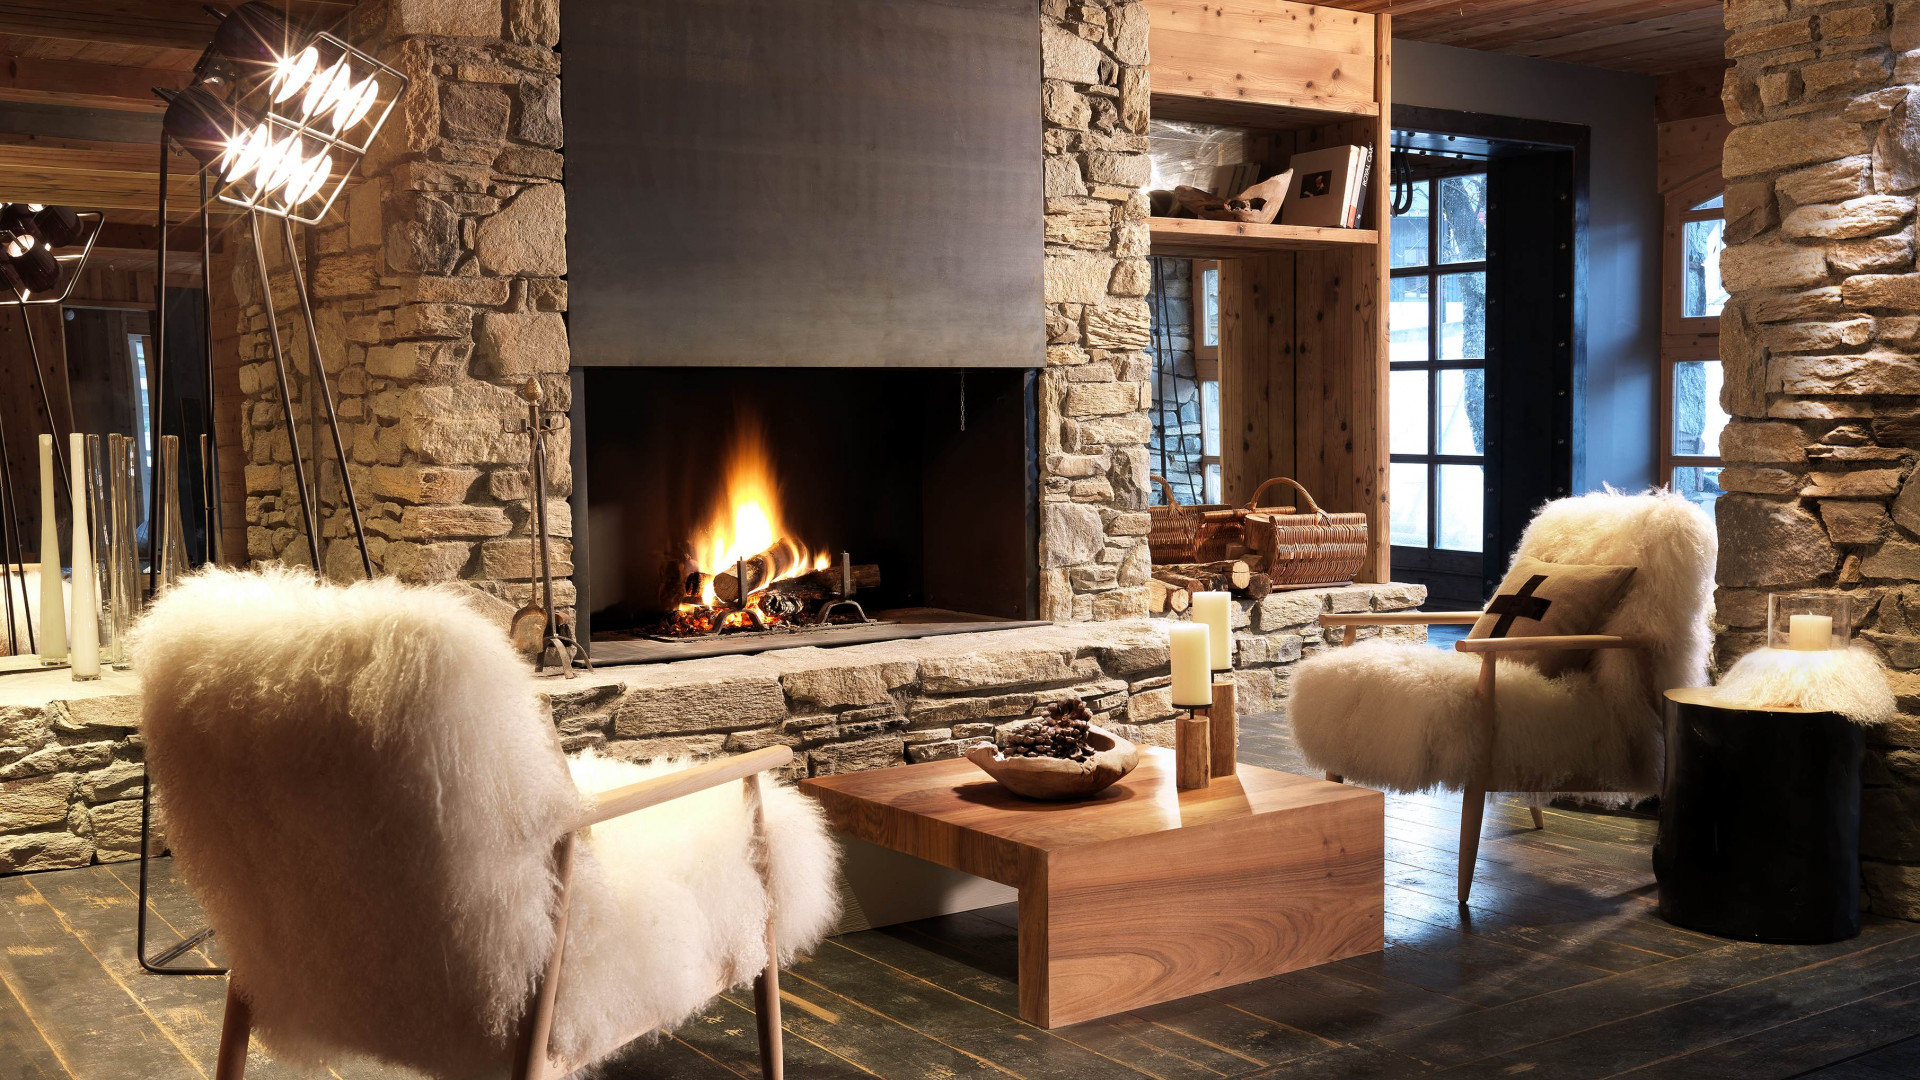 Interior at M de Megeve, French Alps